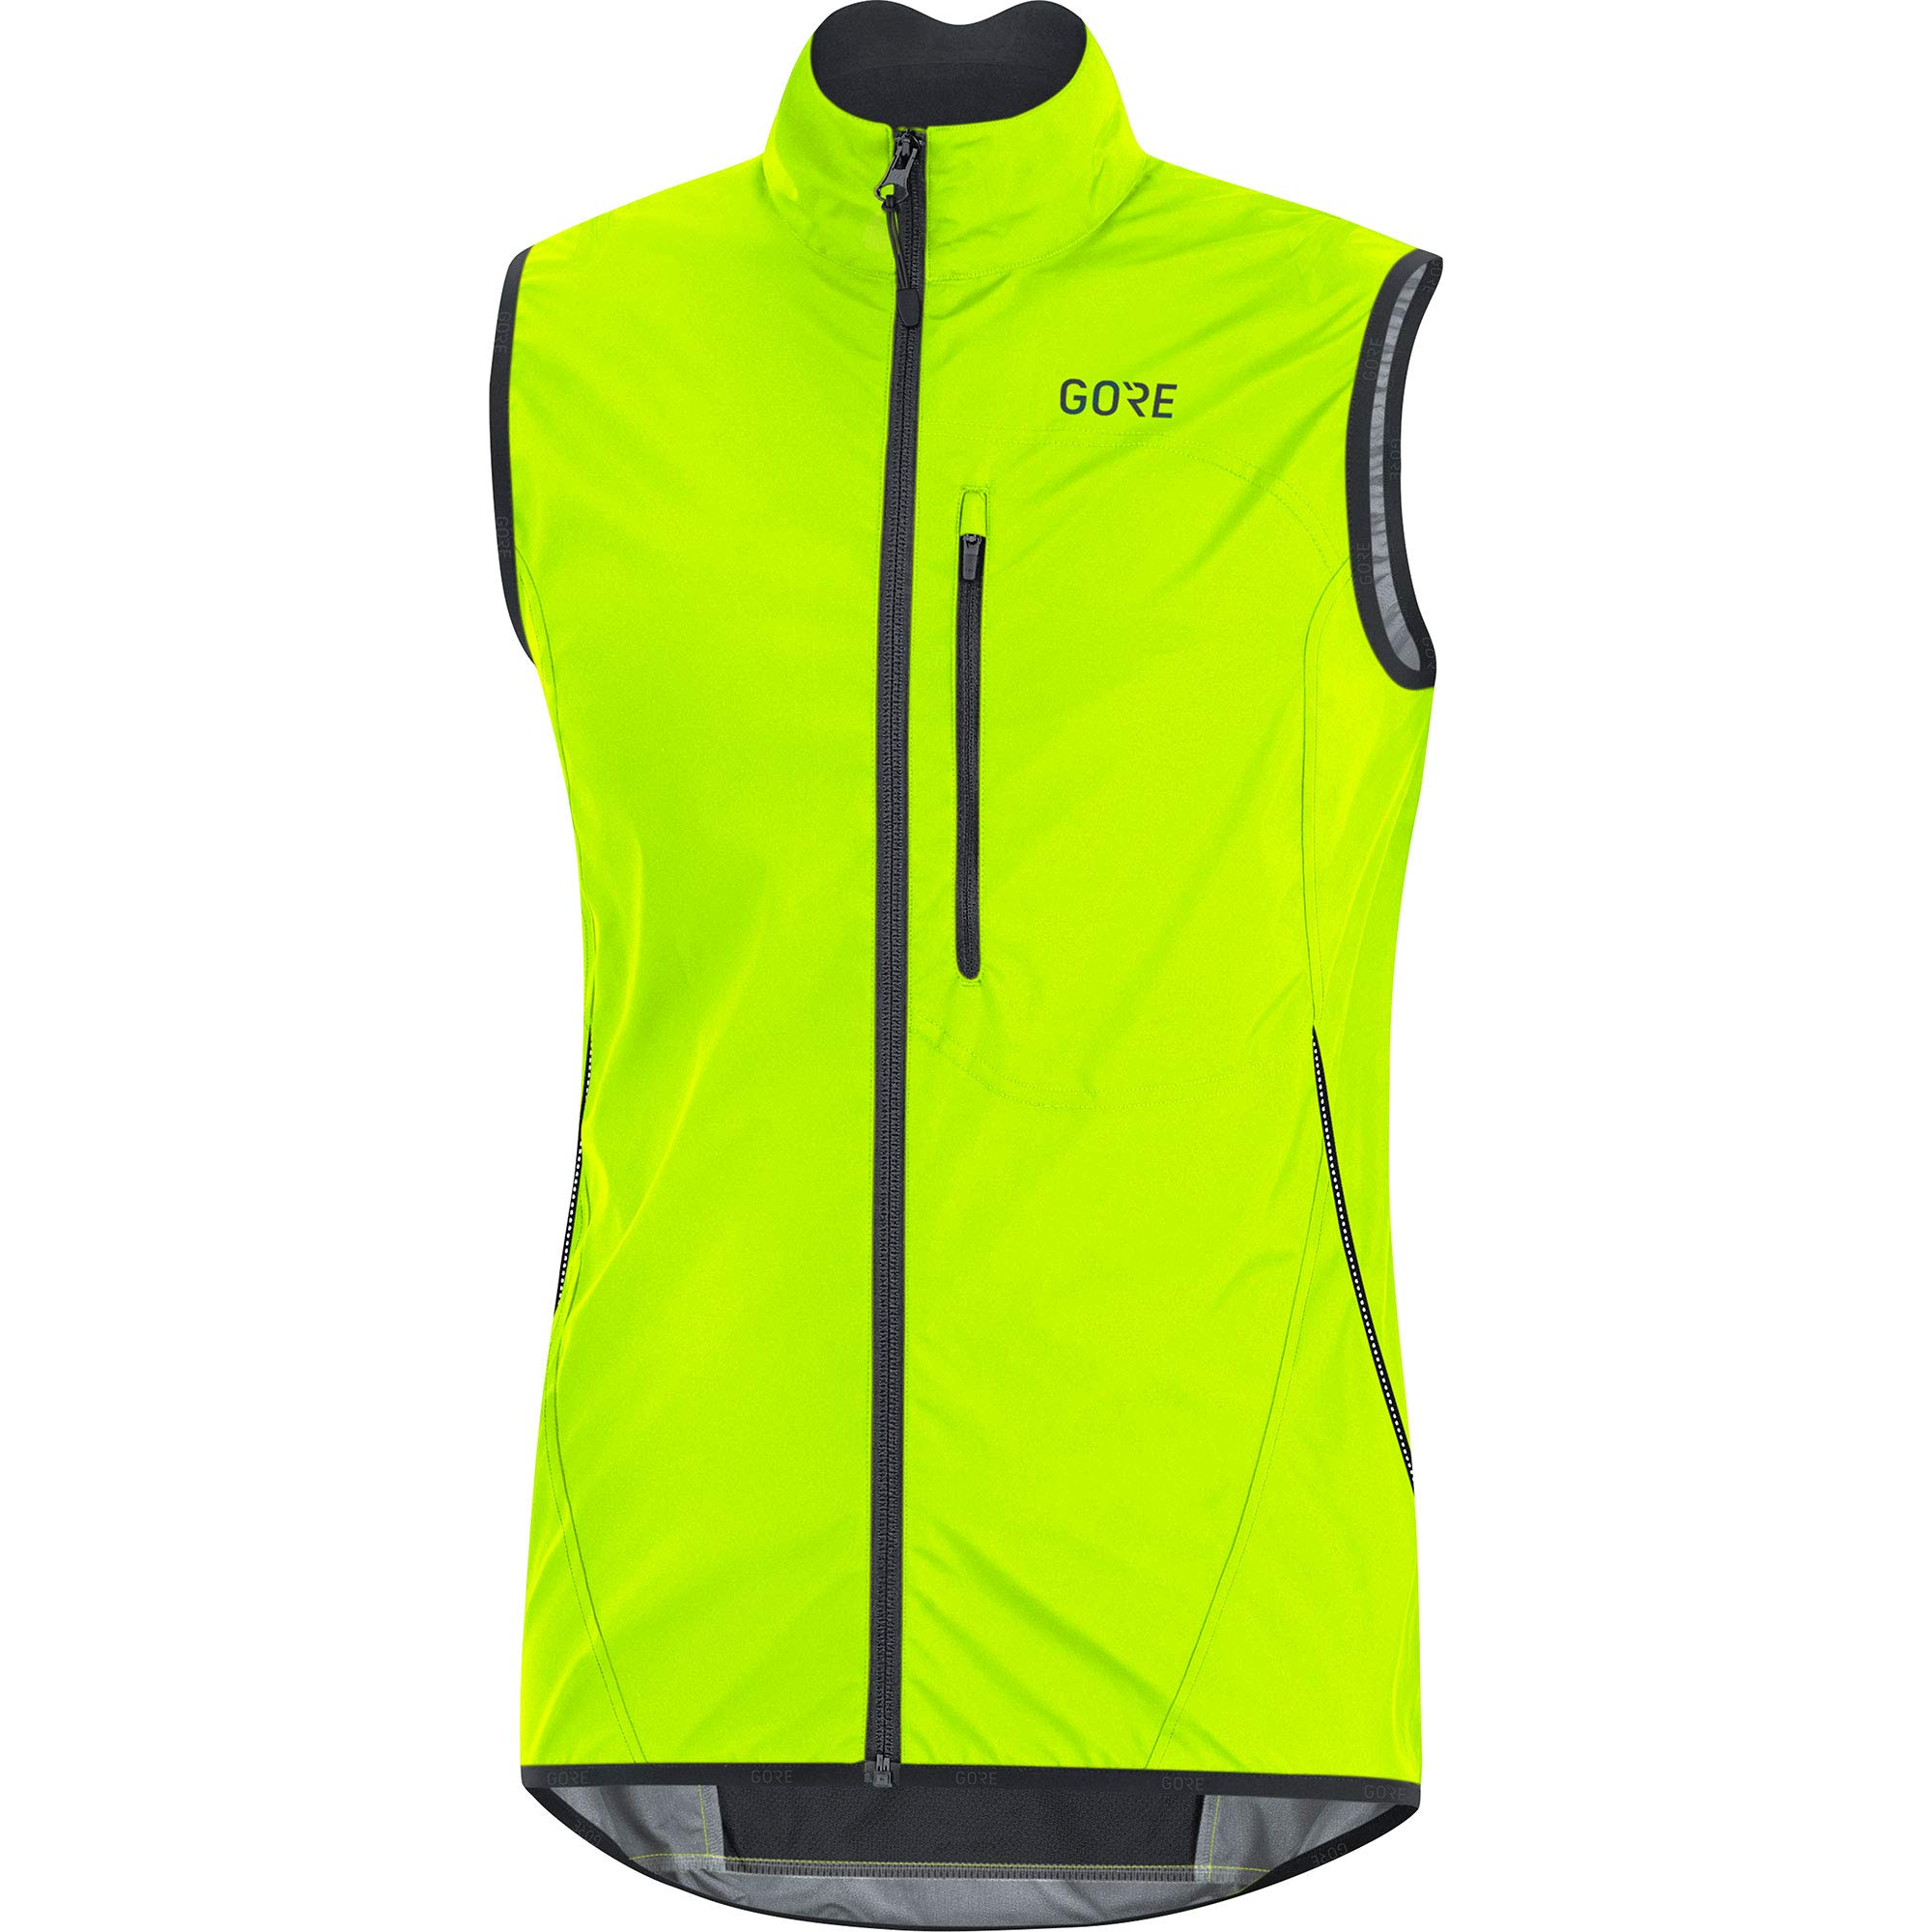 GORE Wear C3 Men's Vest GORE WINDSTOPPER, L, Neon Yellow/Black by GORE WEAR